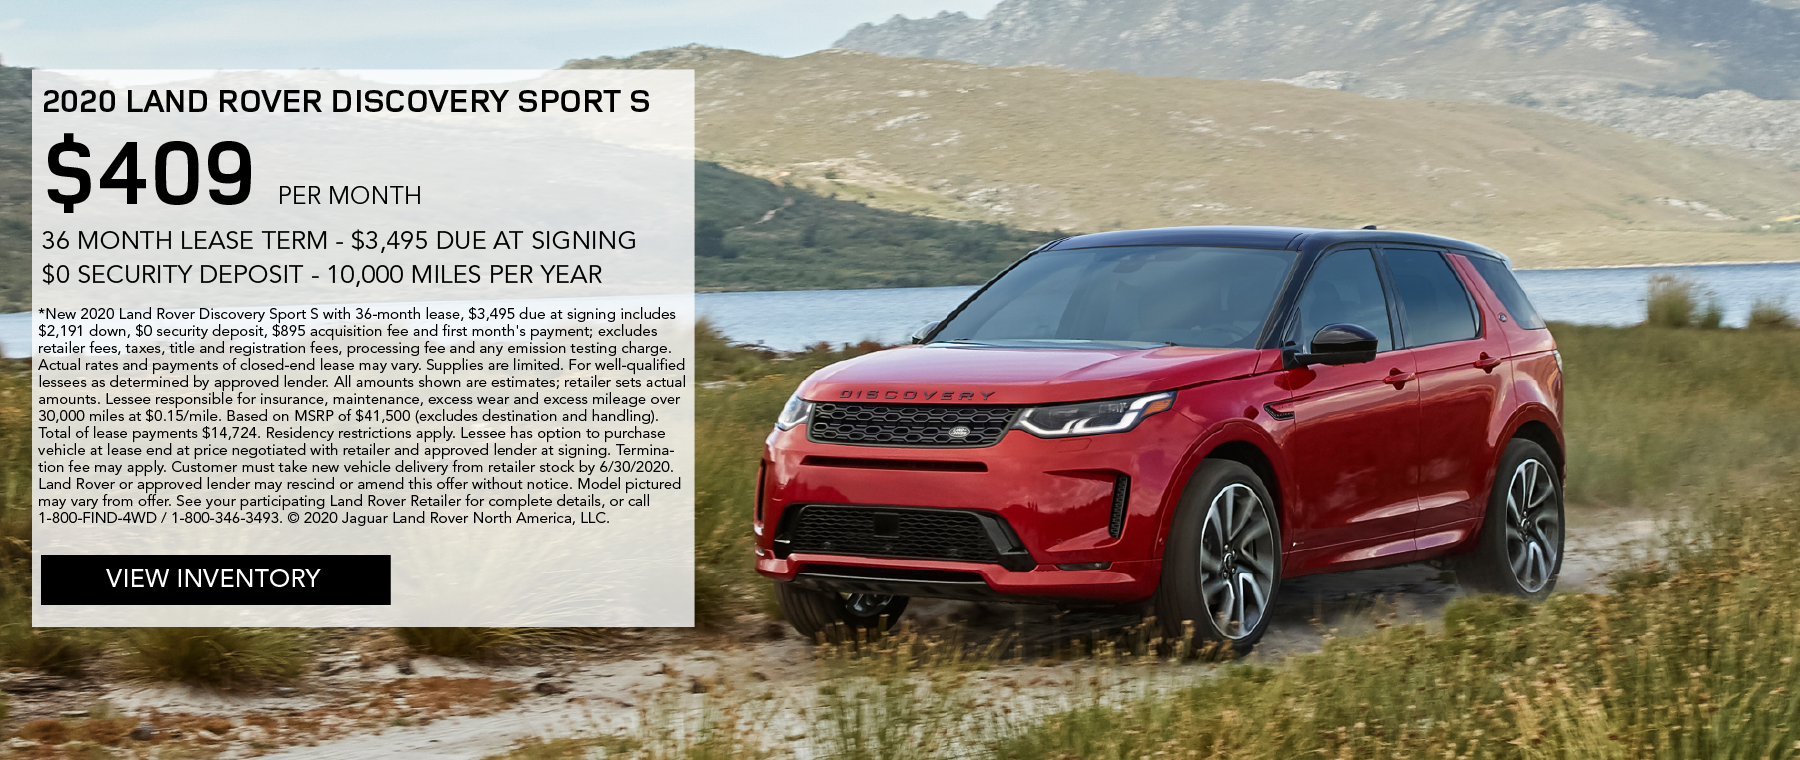 TH. 36 MONTH LEASE TERM. $3,495 CASH DUE AT SIGNING. $0 SECURITY DEPOSIT. 10,000 MILES PER YEAR. EXCLUDES RETAILER FEES, TAXES, TITLE AND REGISTRATION FEES, PROCESSING FEE AND ANY EMISSION TESTING CHARGE. OFFER ENDS 6/30/2020. RED LAND ROVER DISCOVERY SPORT PARKED IN GRASS NEAR LAKE.